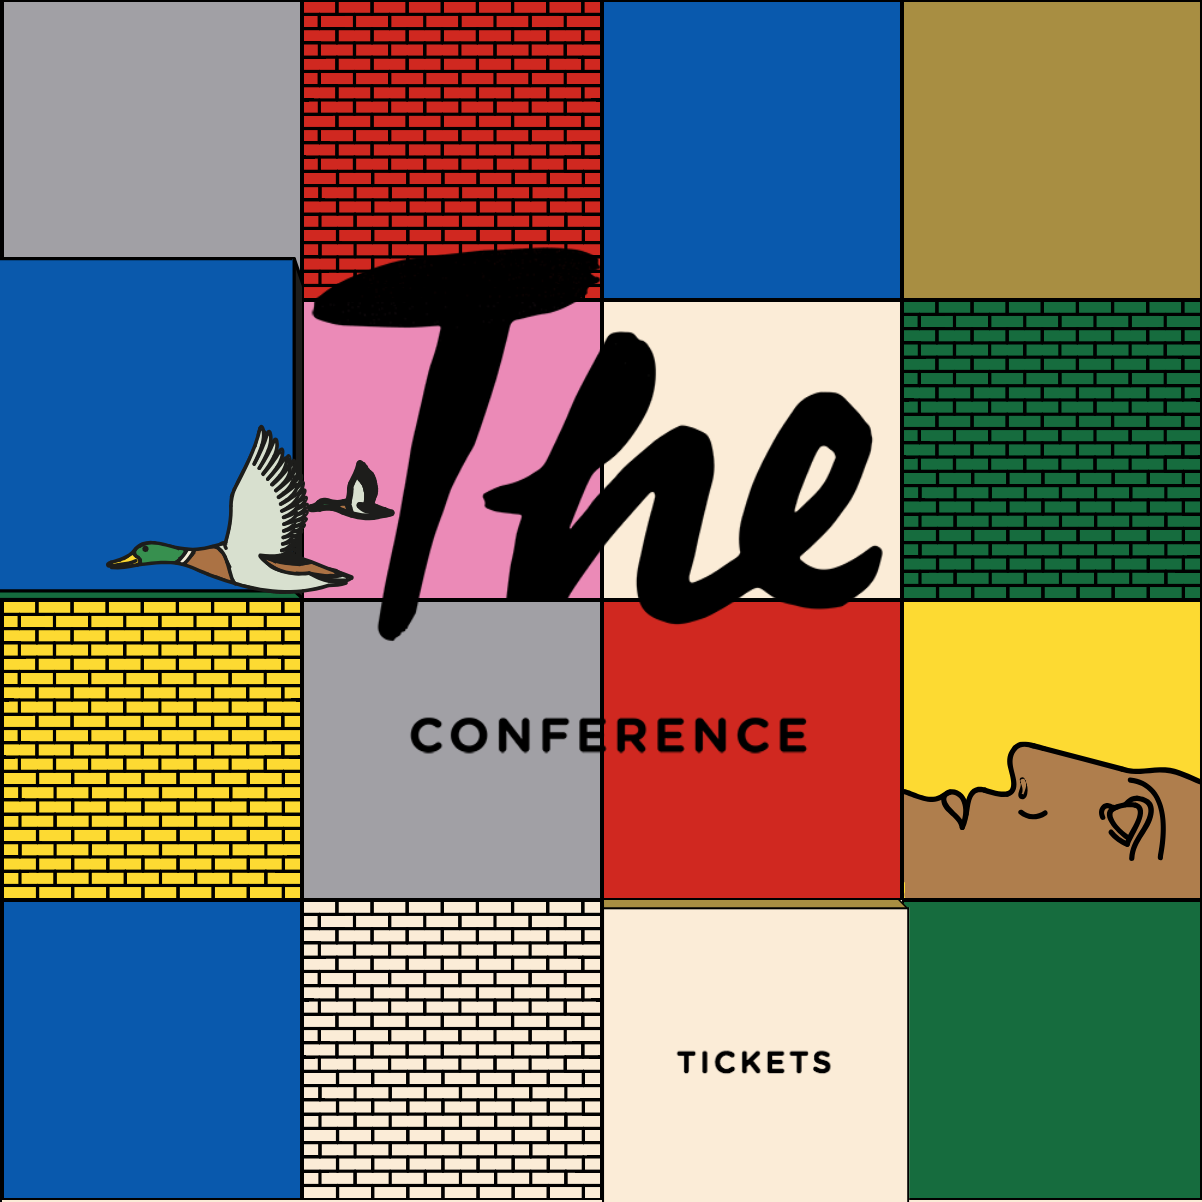 The Conference - EXPLORING COMPLEXITYThe Conference is a two-day exploration of human behavior, new technology and how to make things happen. Dr. Mosconi will be speaking about Brain Food and how to maximize productivity through your diet:Where: Malmö, SwedenWhen: September 5th, 2018Watch my talk here.